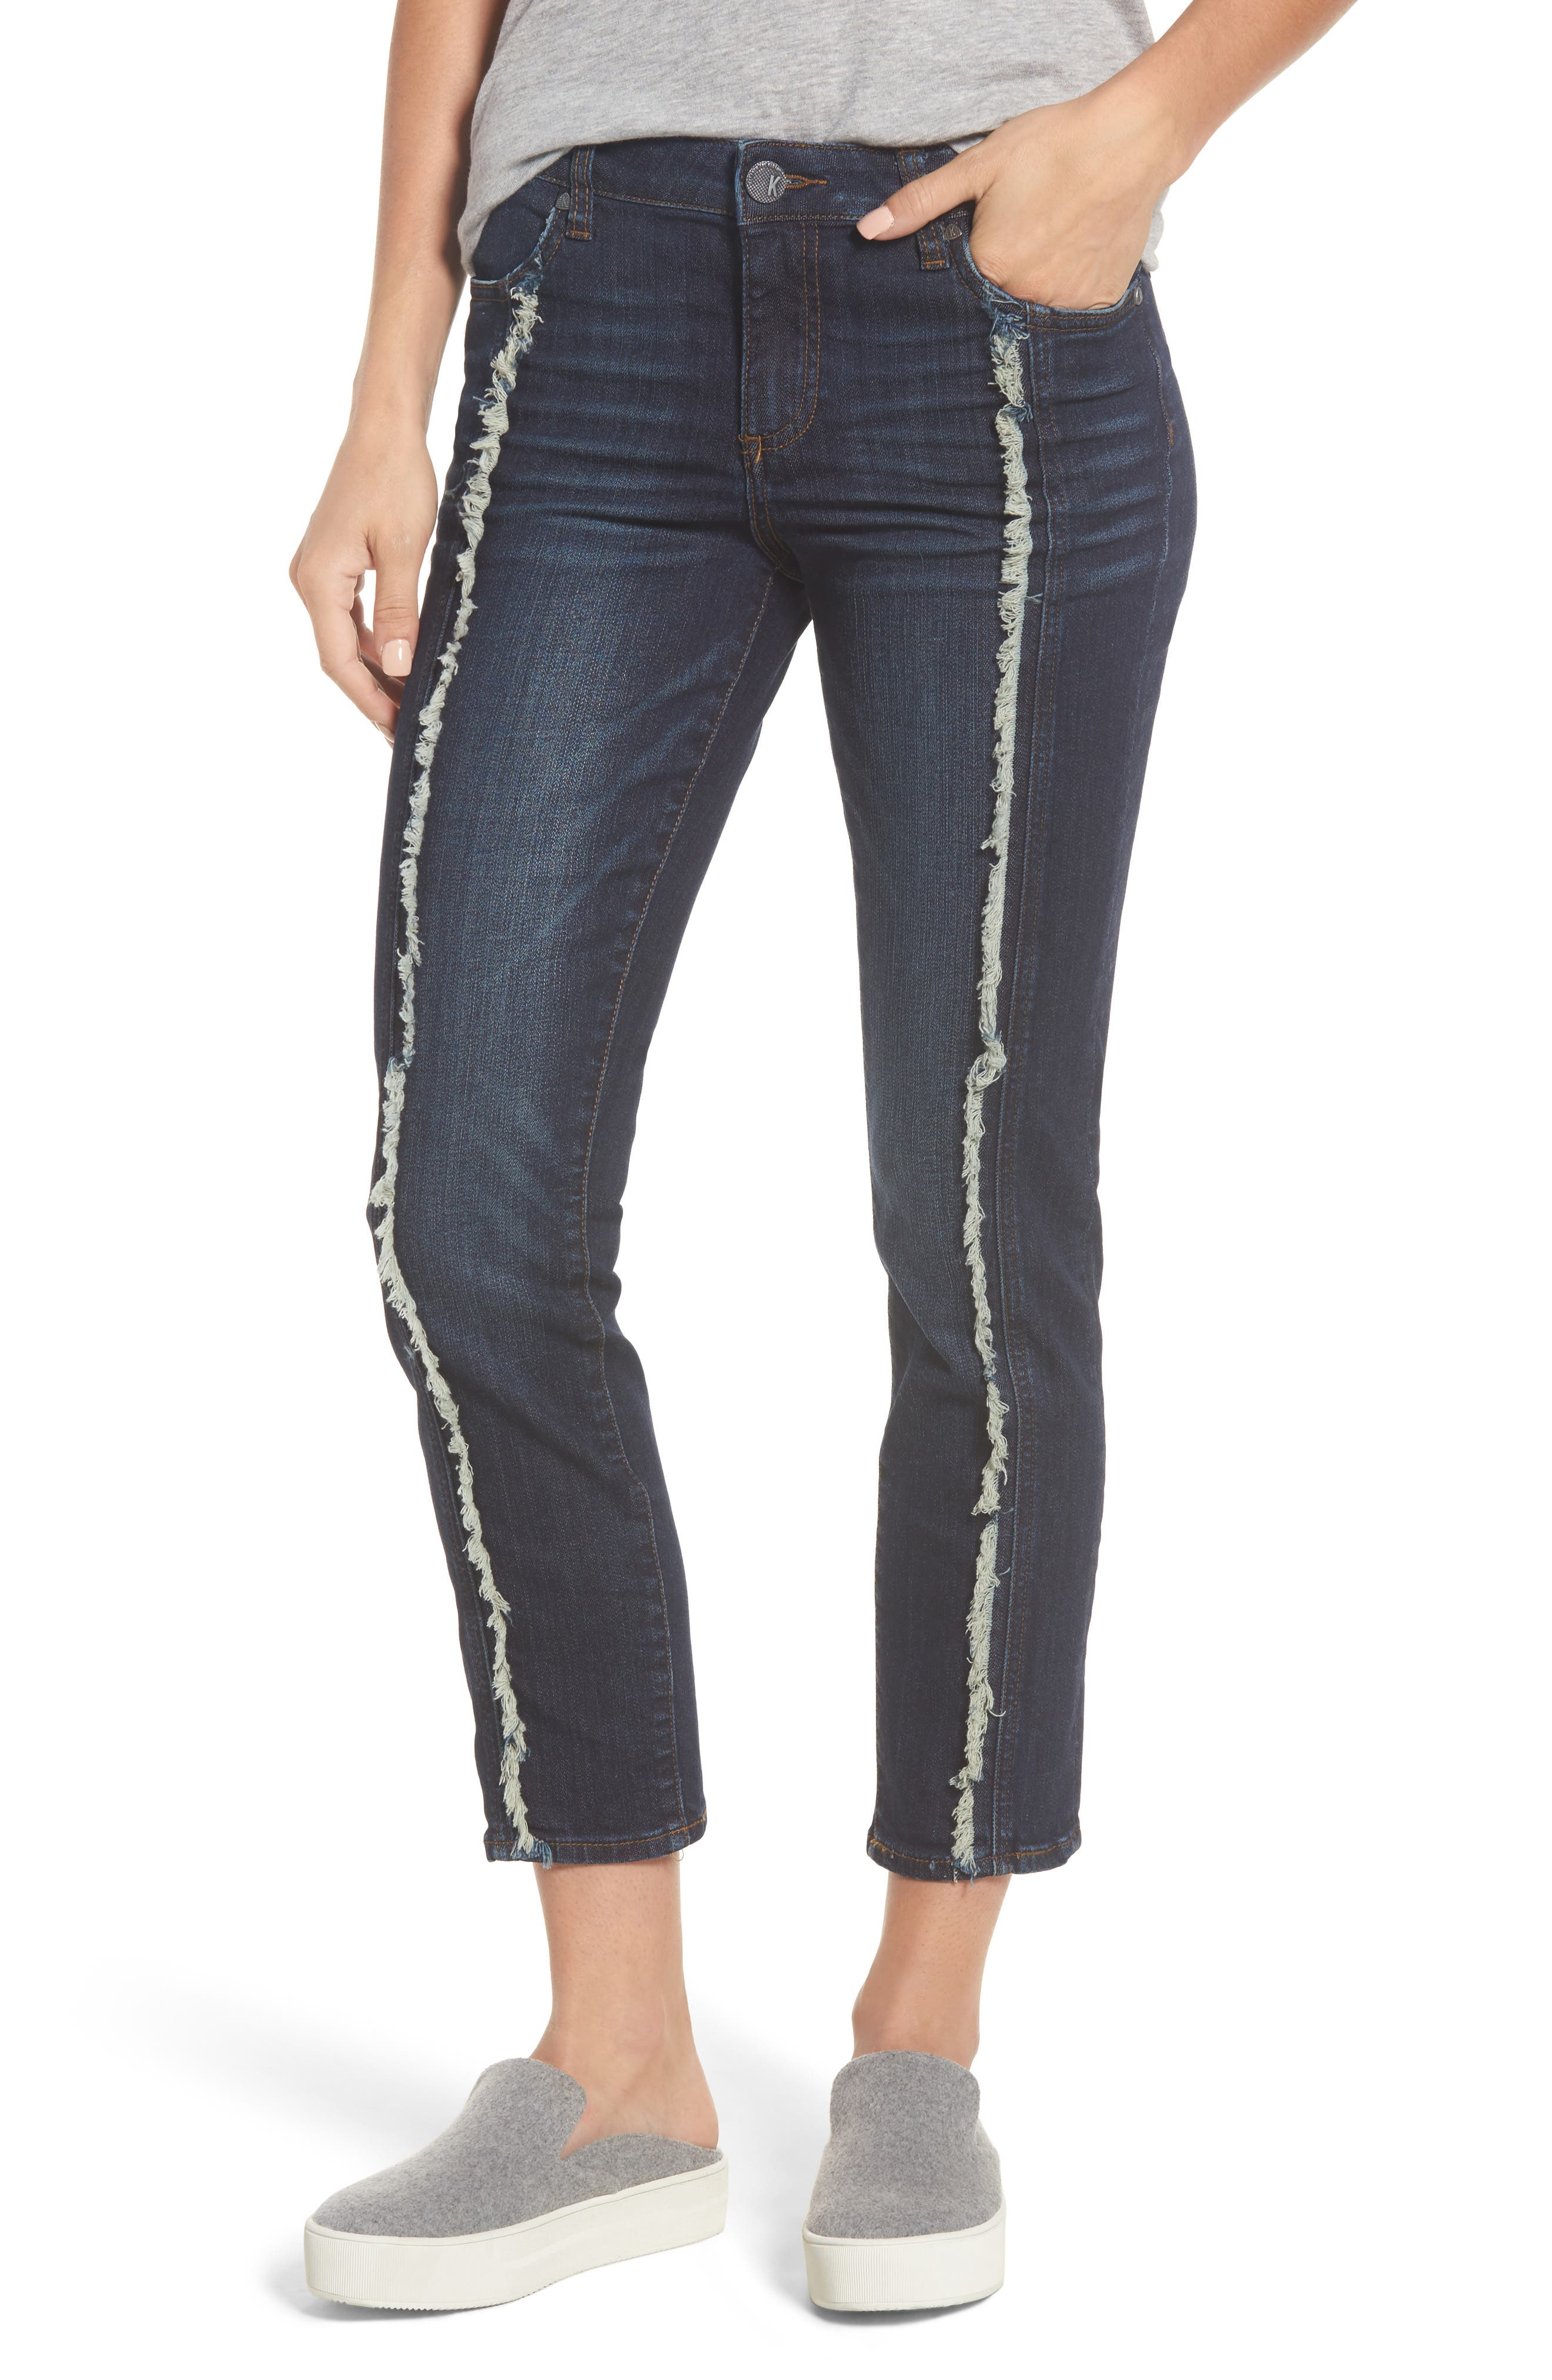 KUT FROM THE KLOTH Reese Frayed Seam Ankle Straight Jeans, Main, color, 411